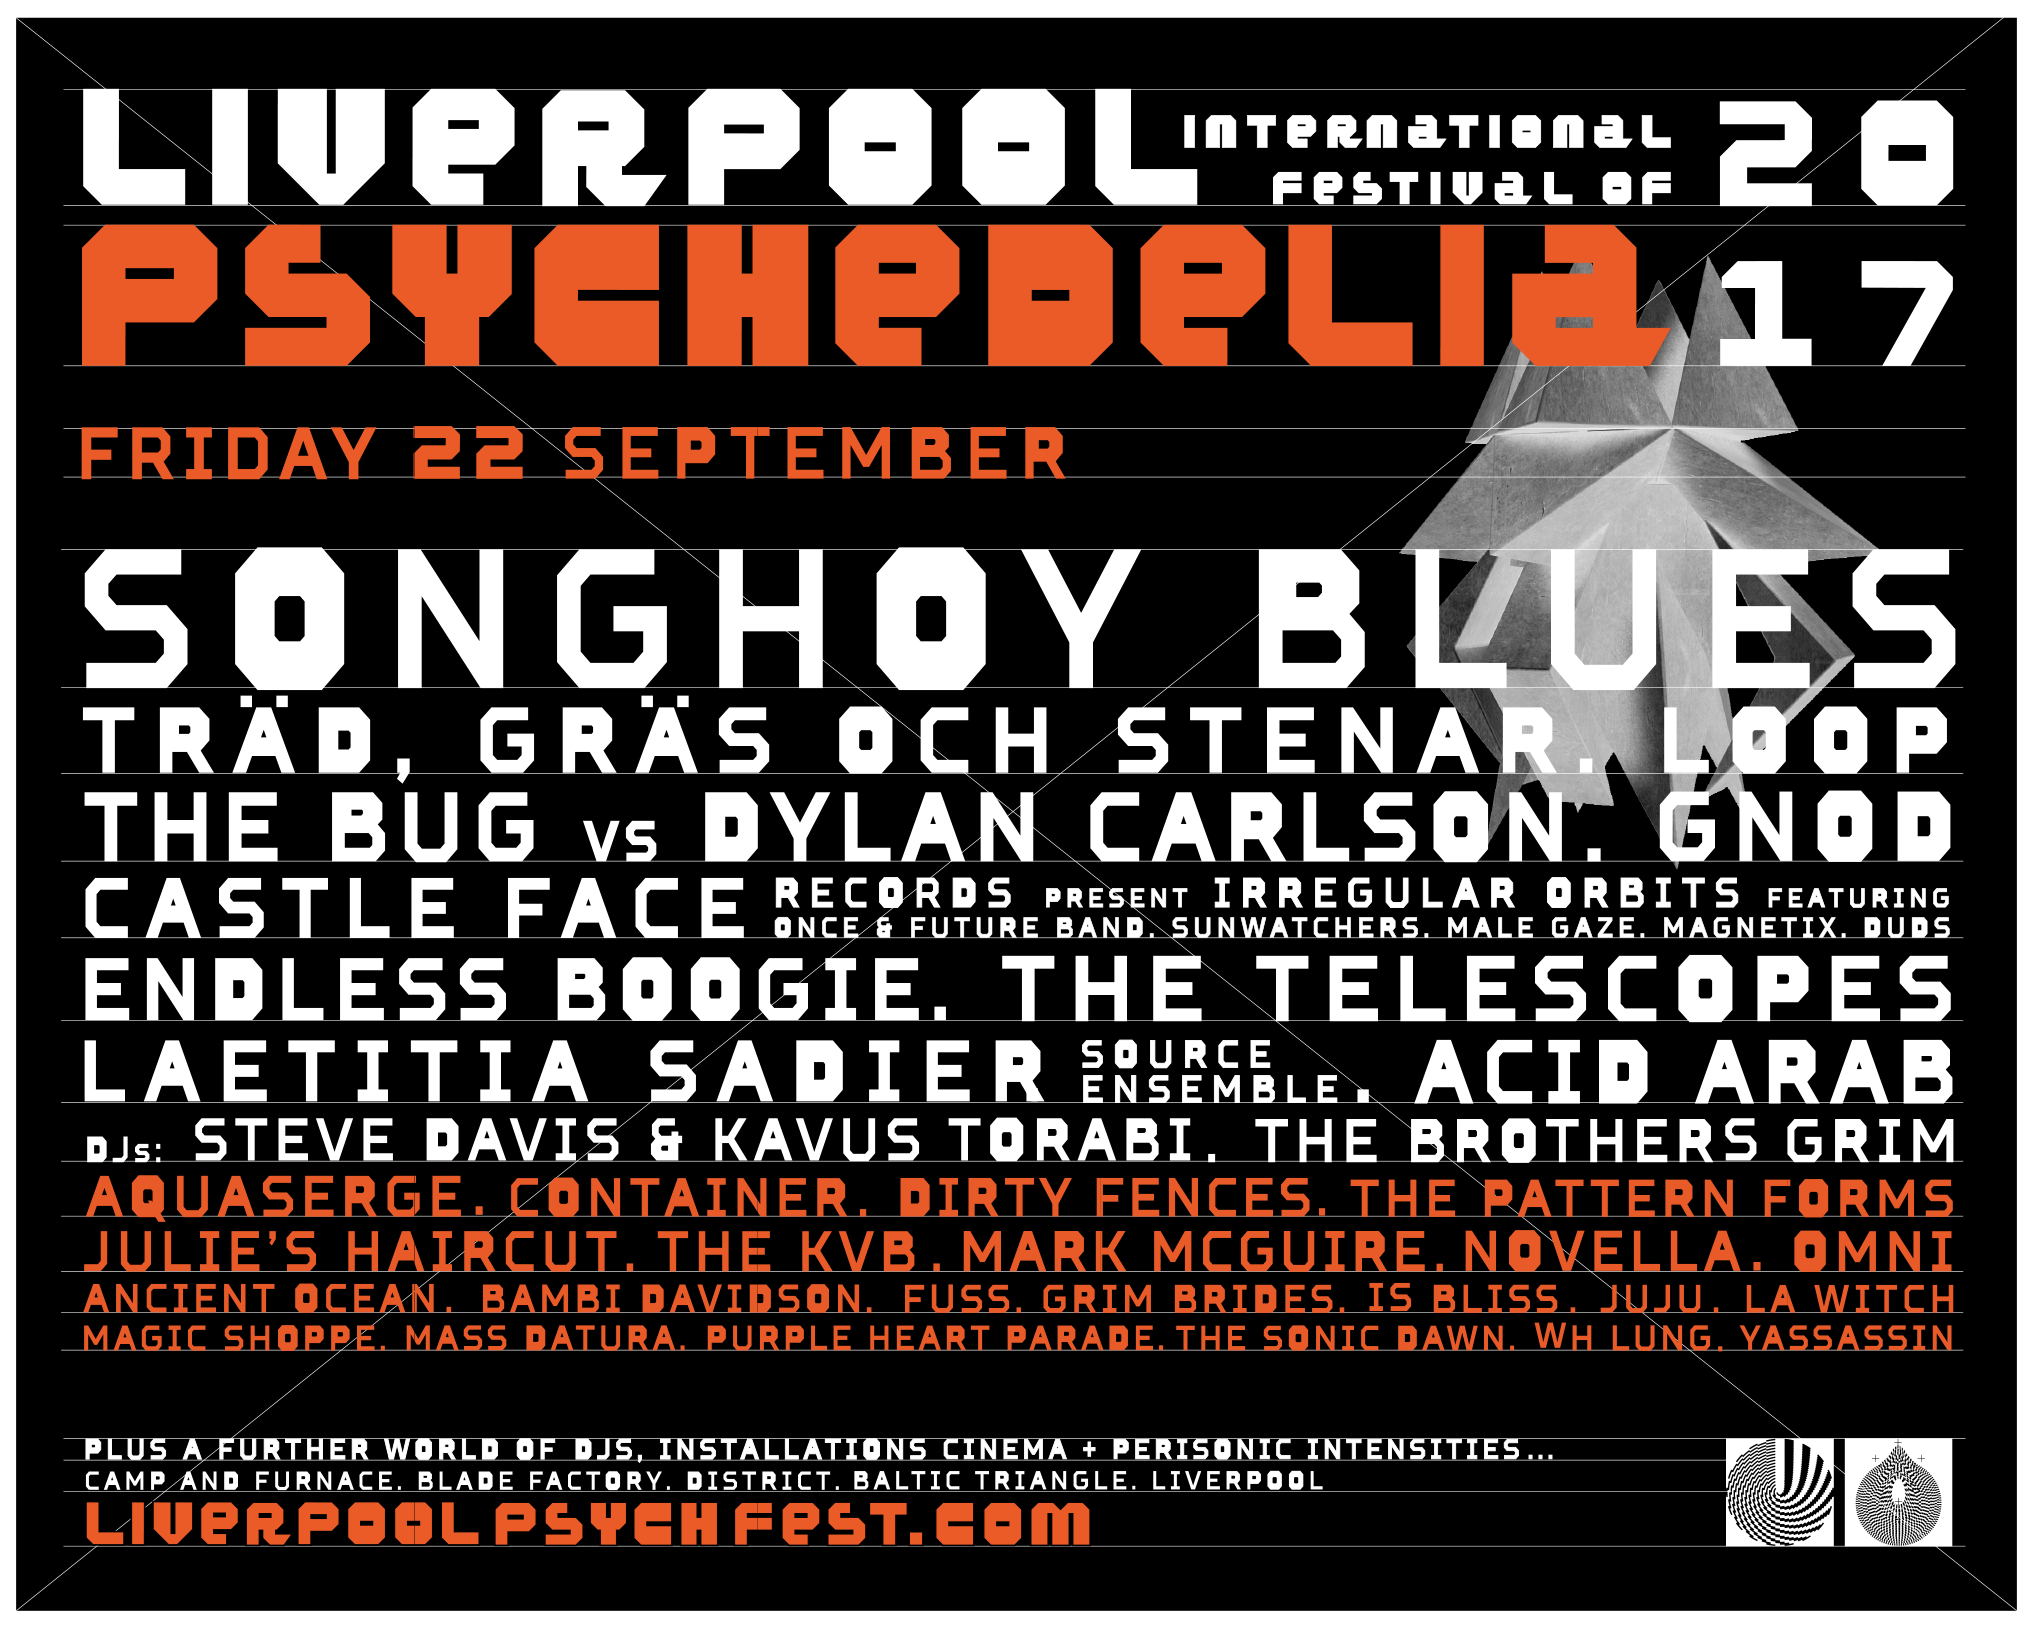 Liverpool Psych Fest Lineup 2